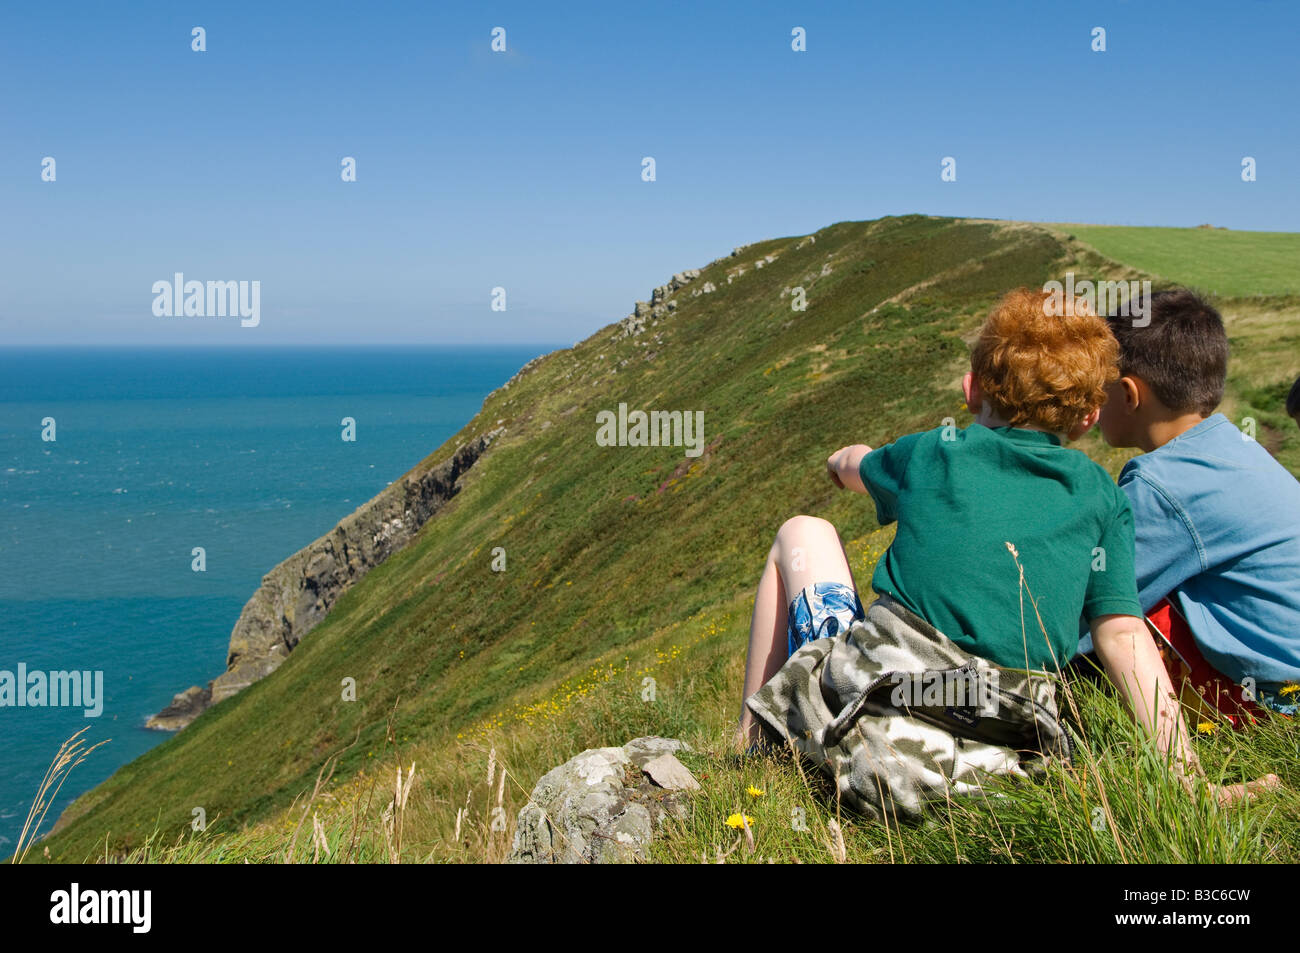 UK, Wales, Pembrokeshire. Two boys sit looking out over Fishguard Bay and the Irish Sea from the Pembrokeshire Coastal - Stock Image